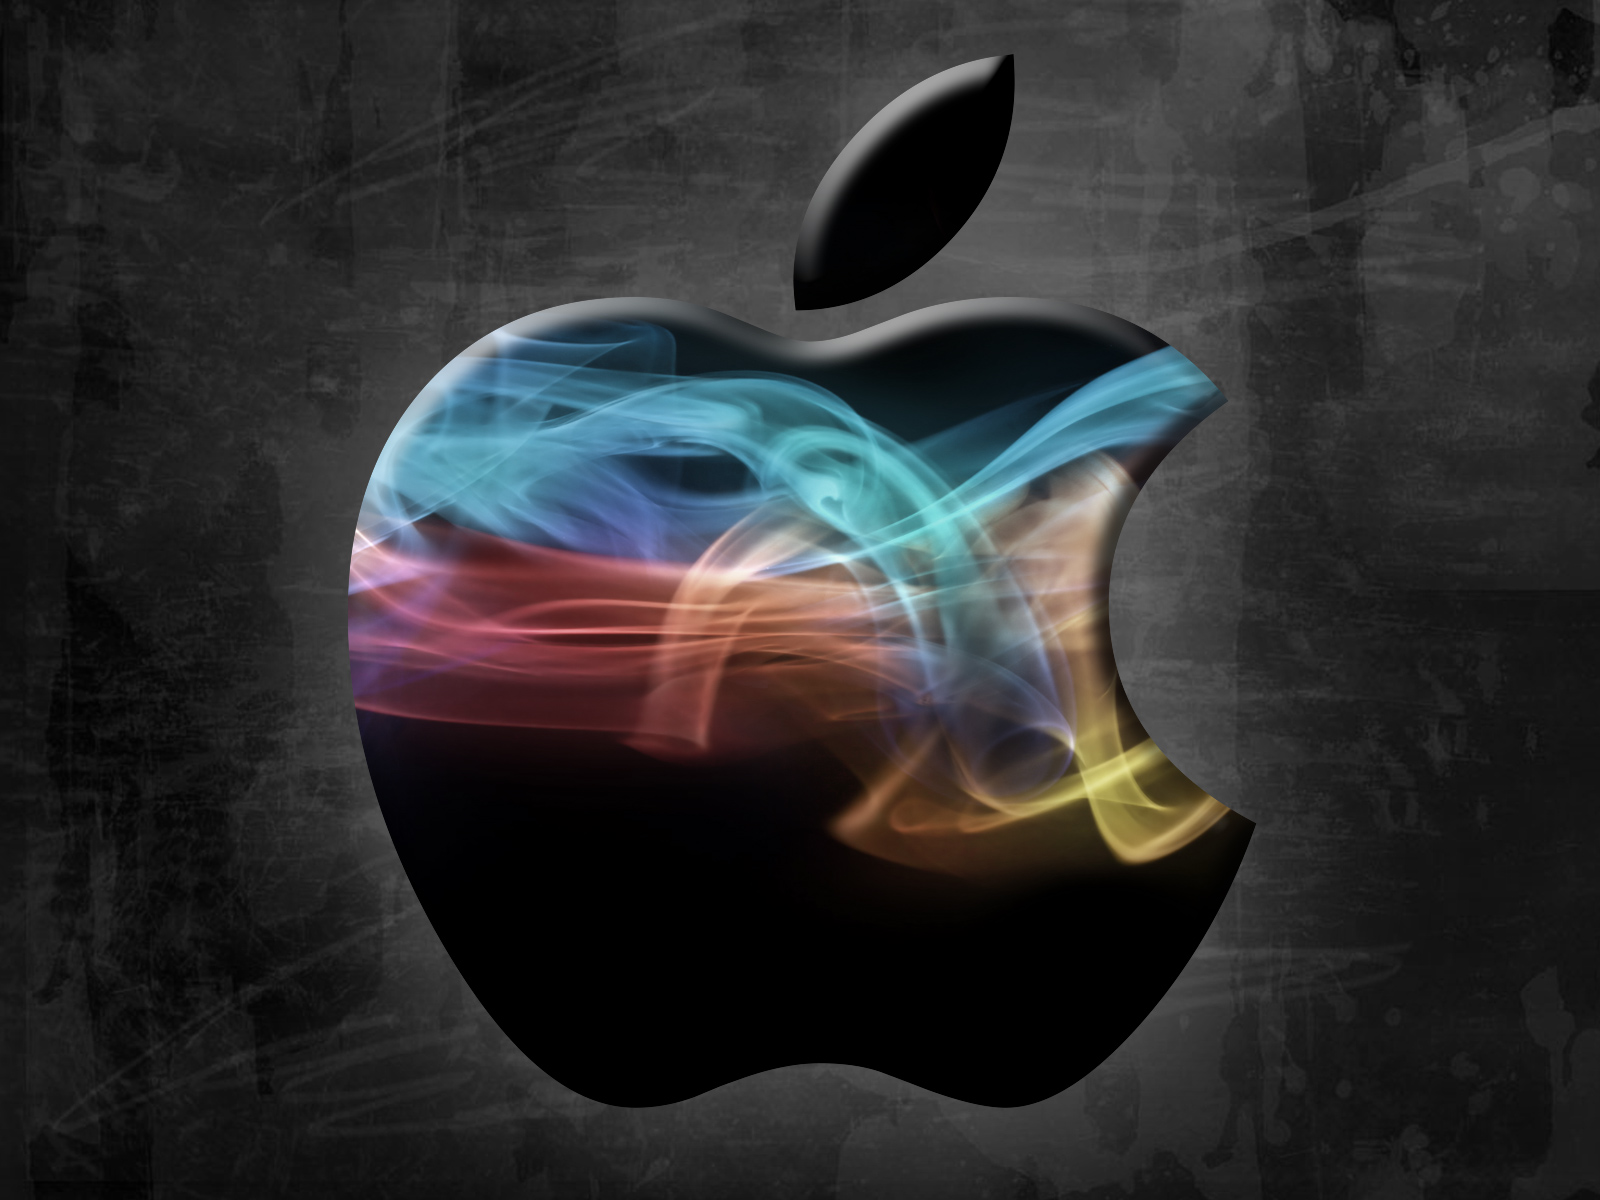 best wallpapers wallpapers for ipad free